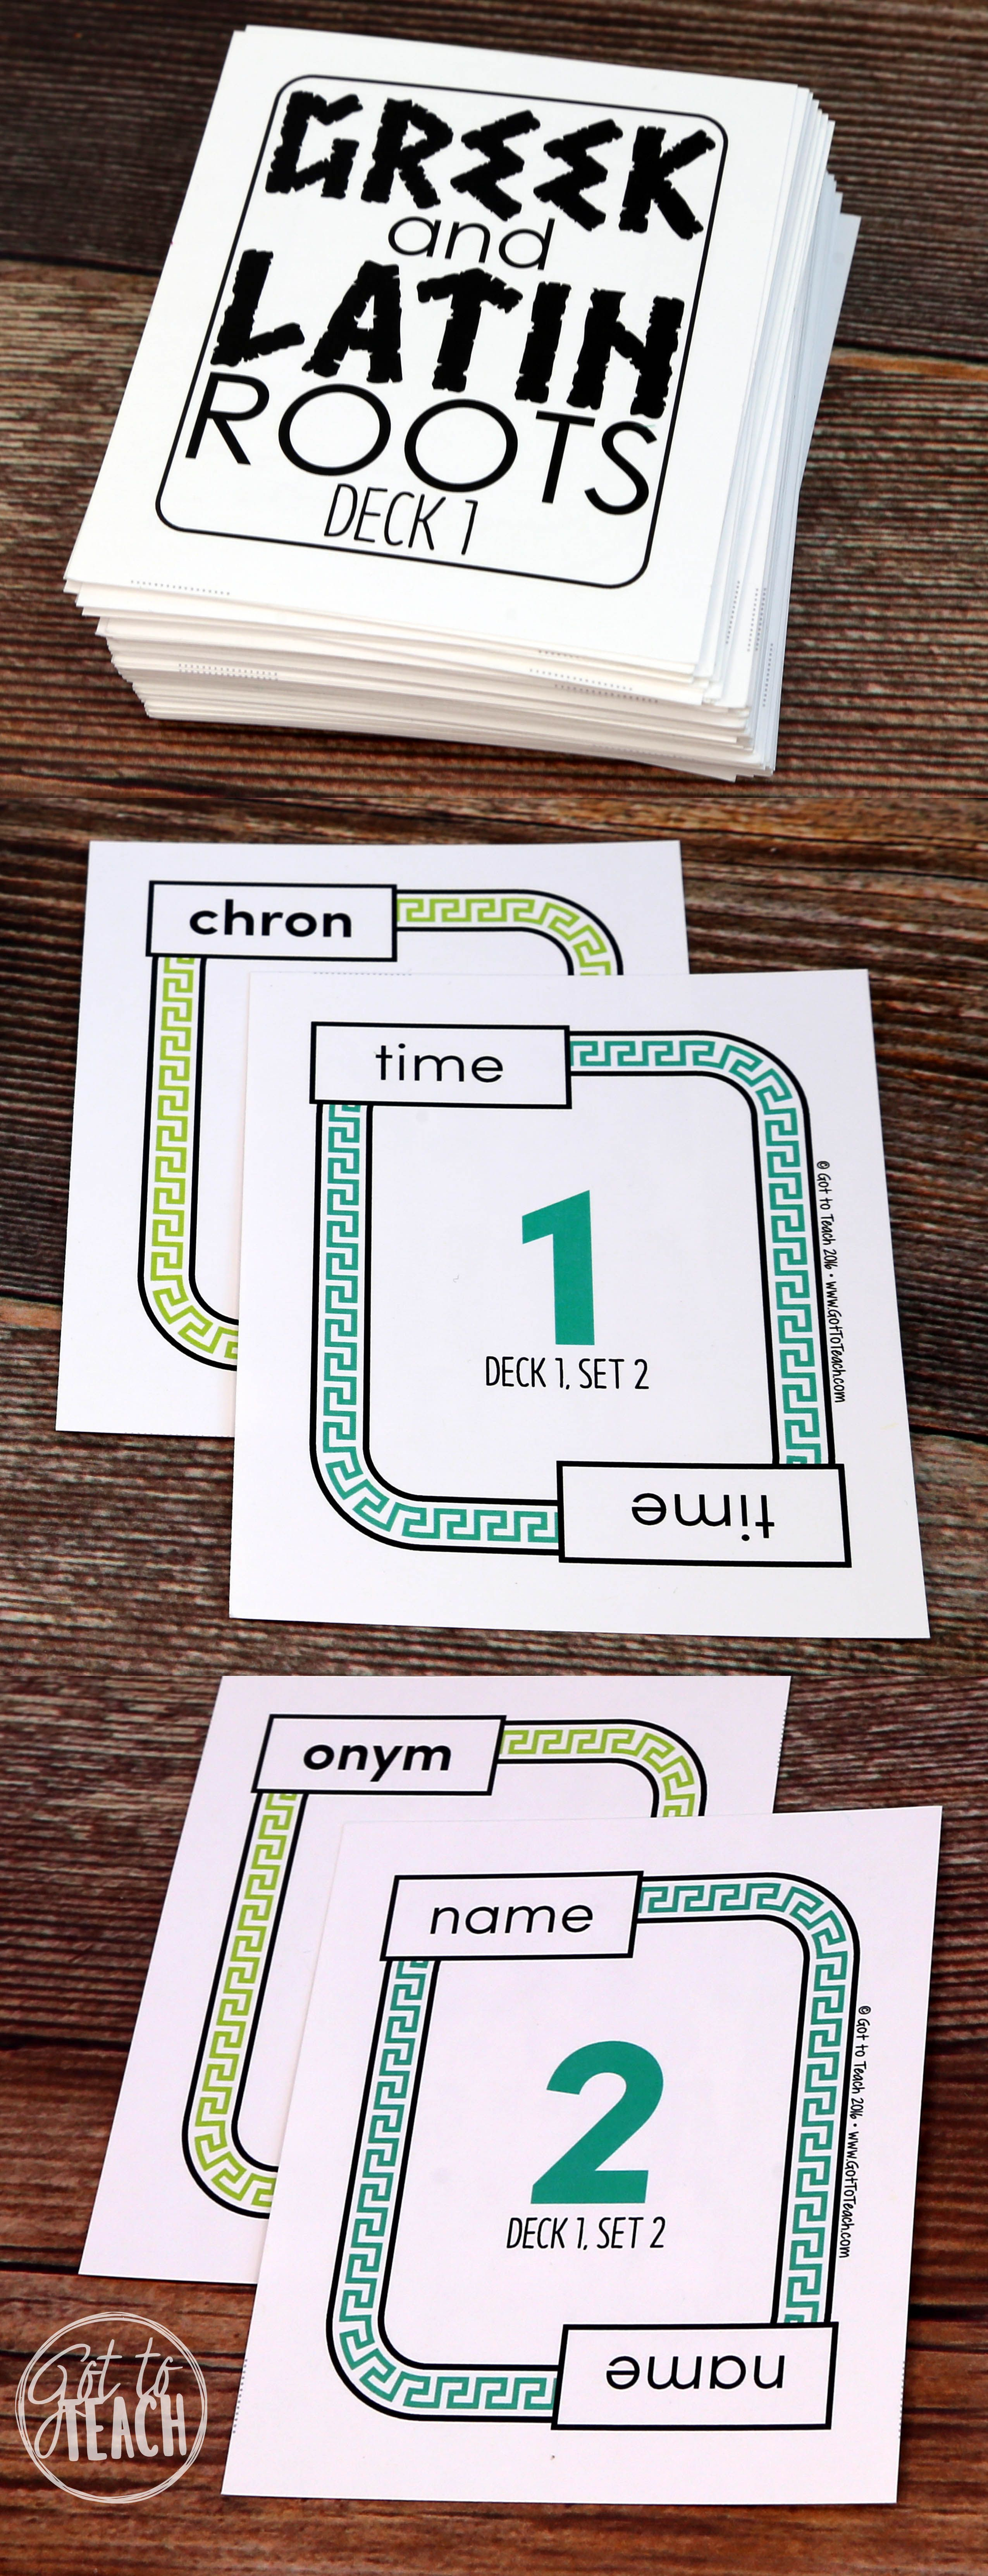 A Fun Card Game To Learn And Reinforce Greek And Latin